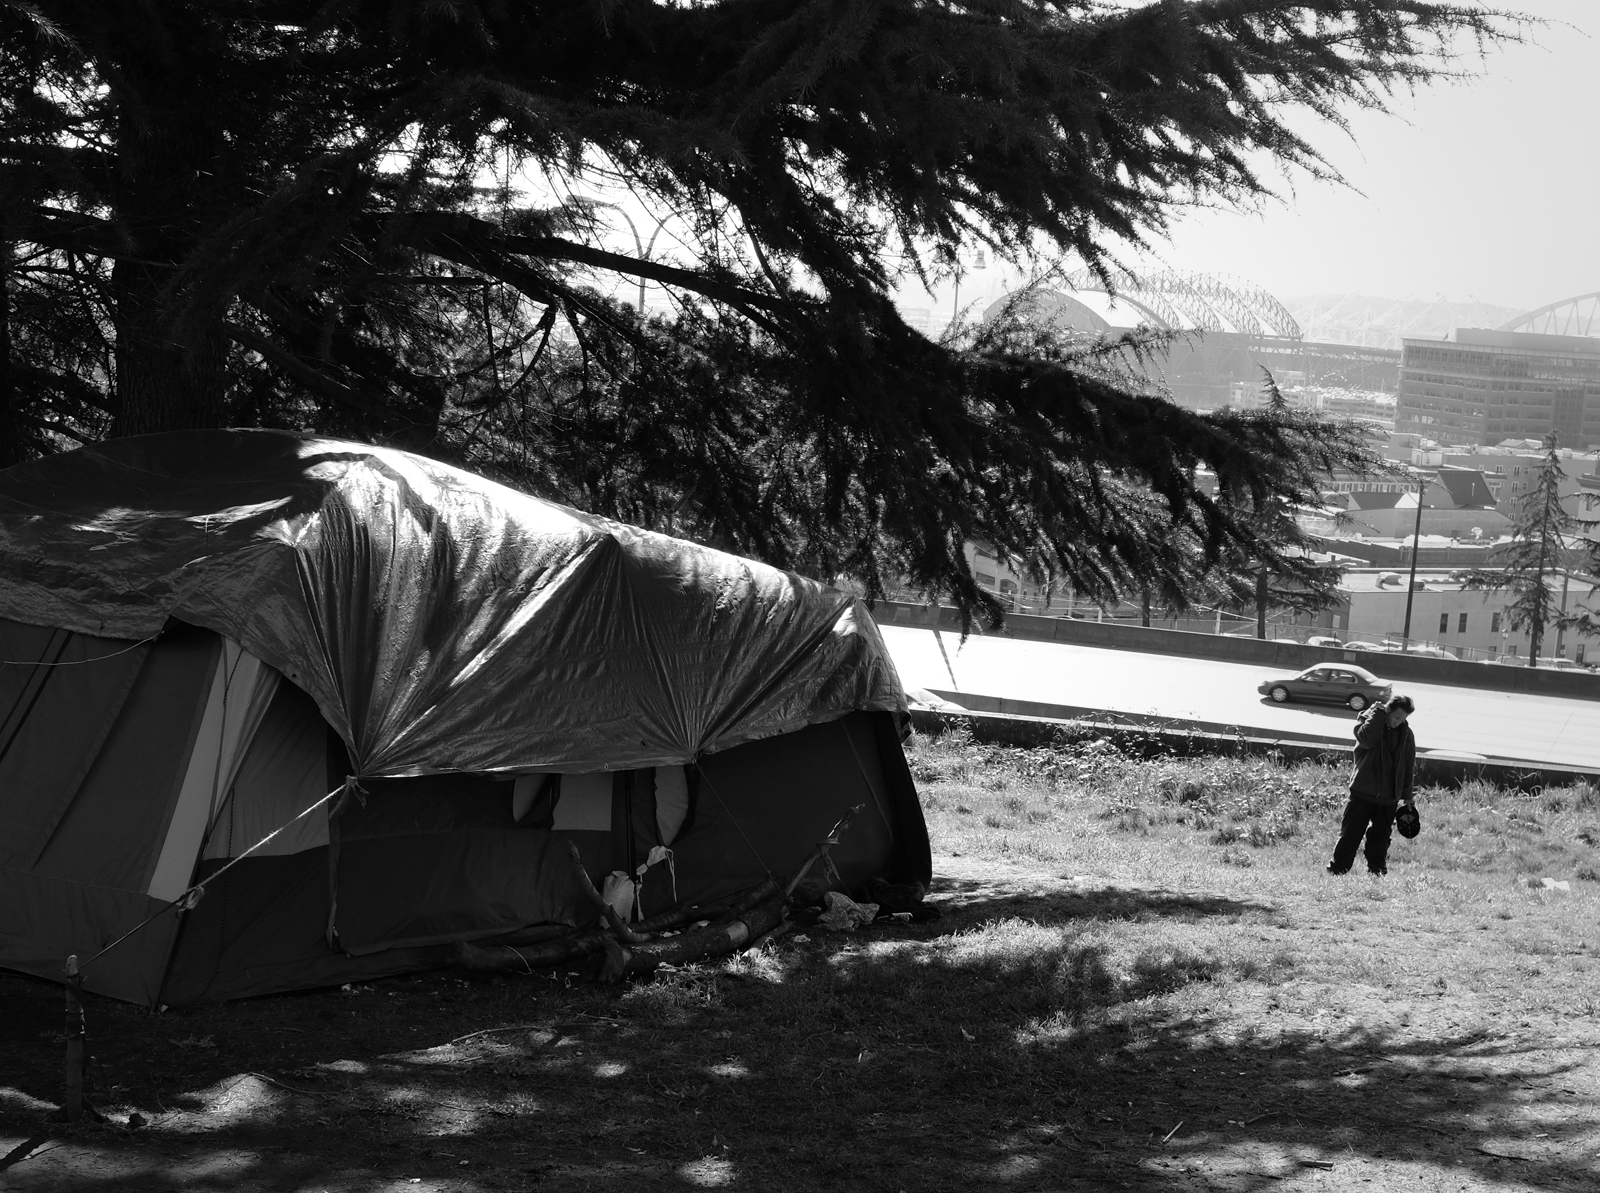 A man walks up a hillside with a tent in the foreground and the Seattle city skline in the back